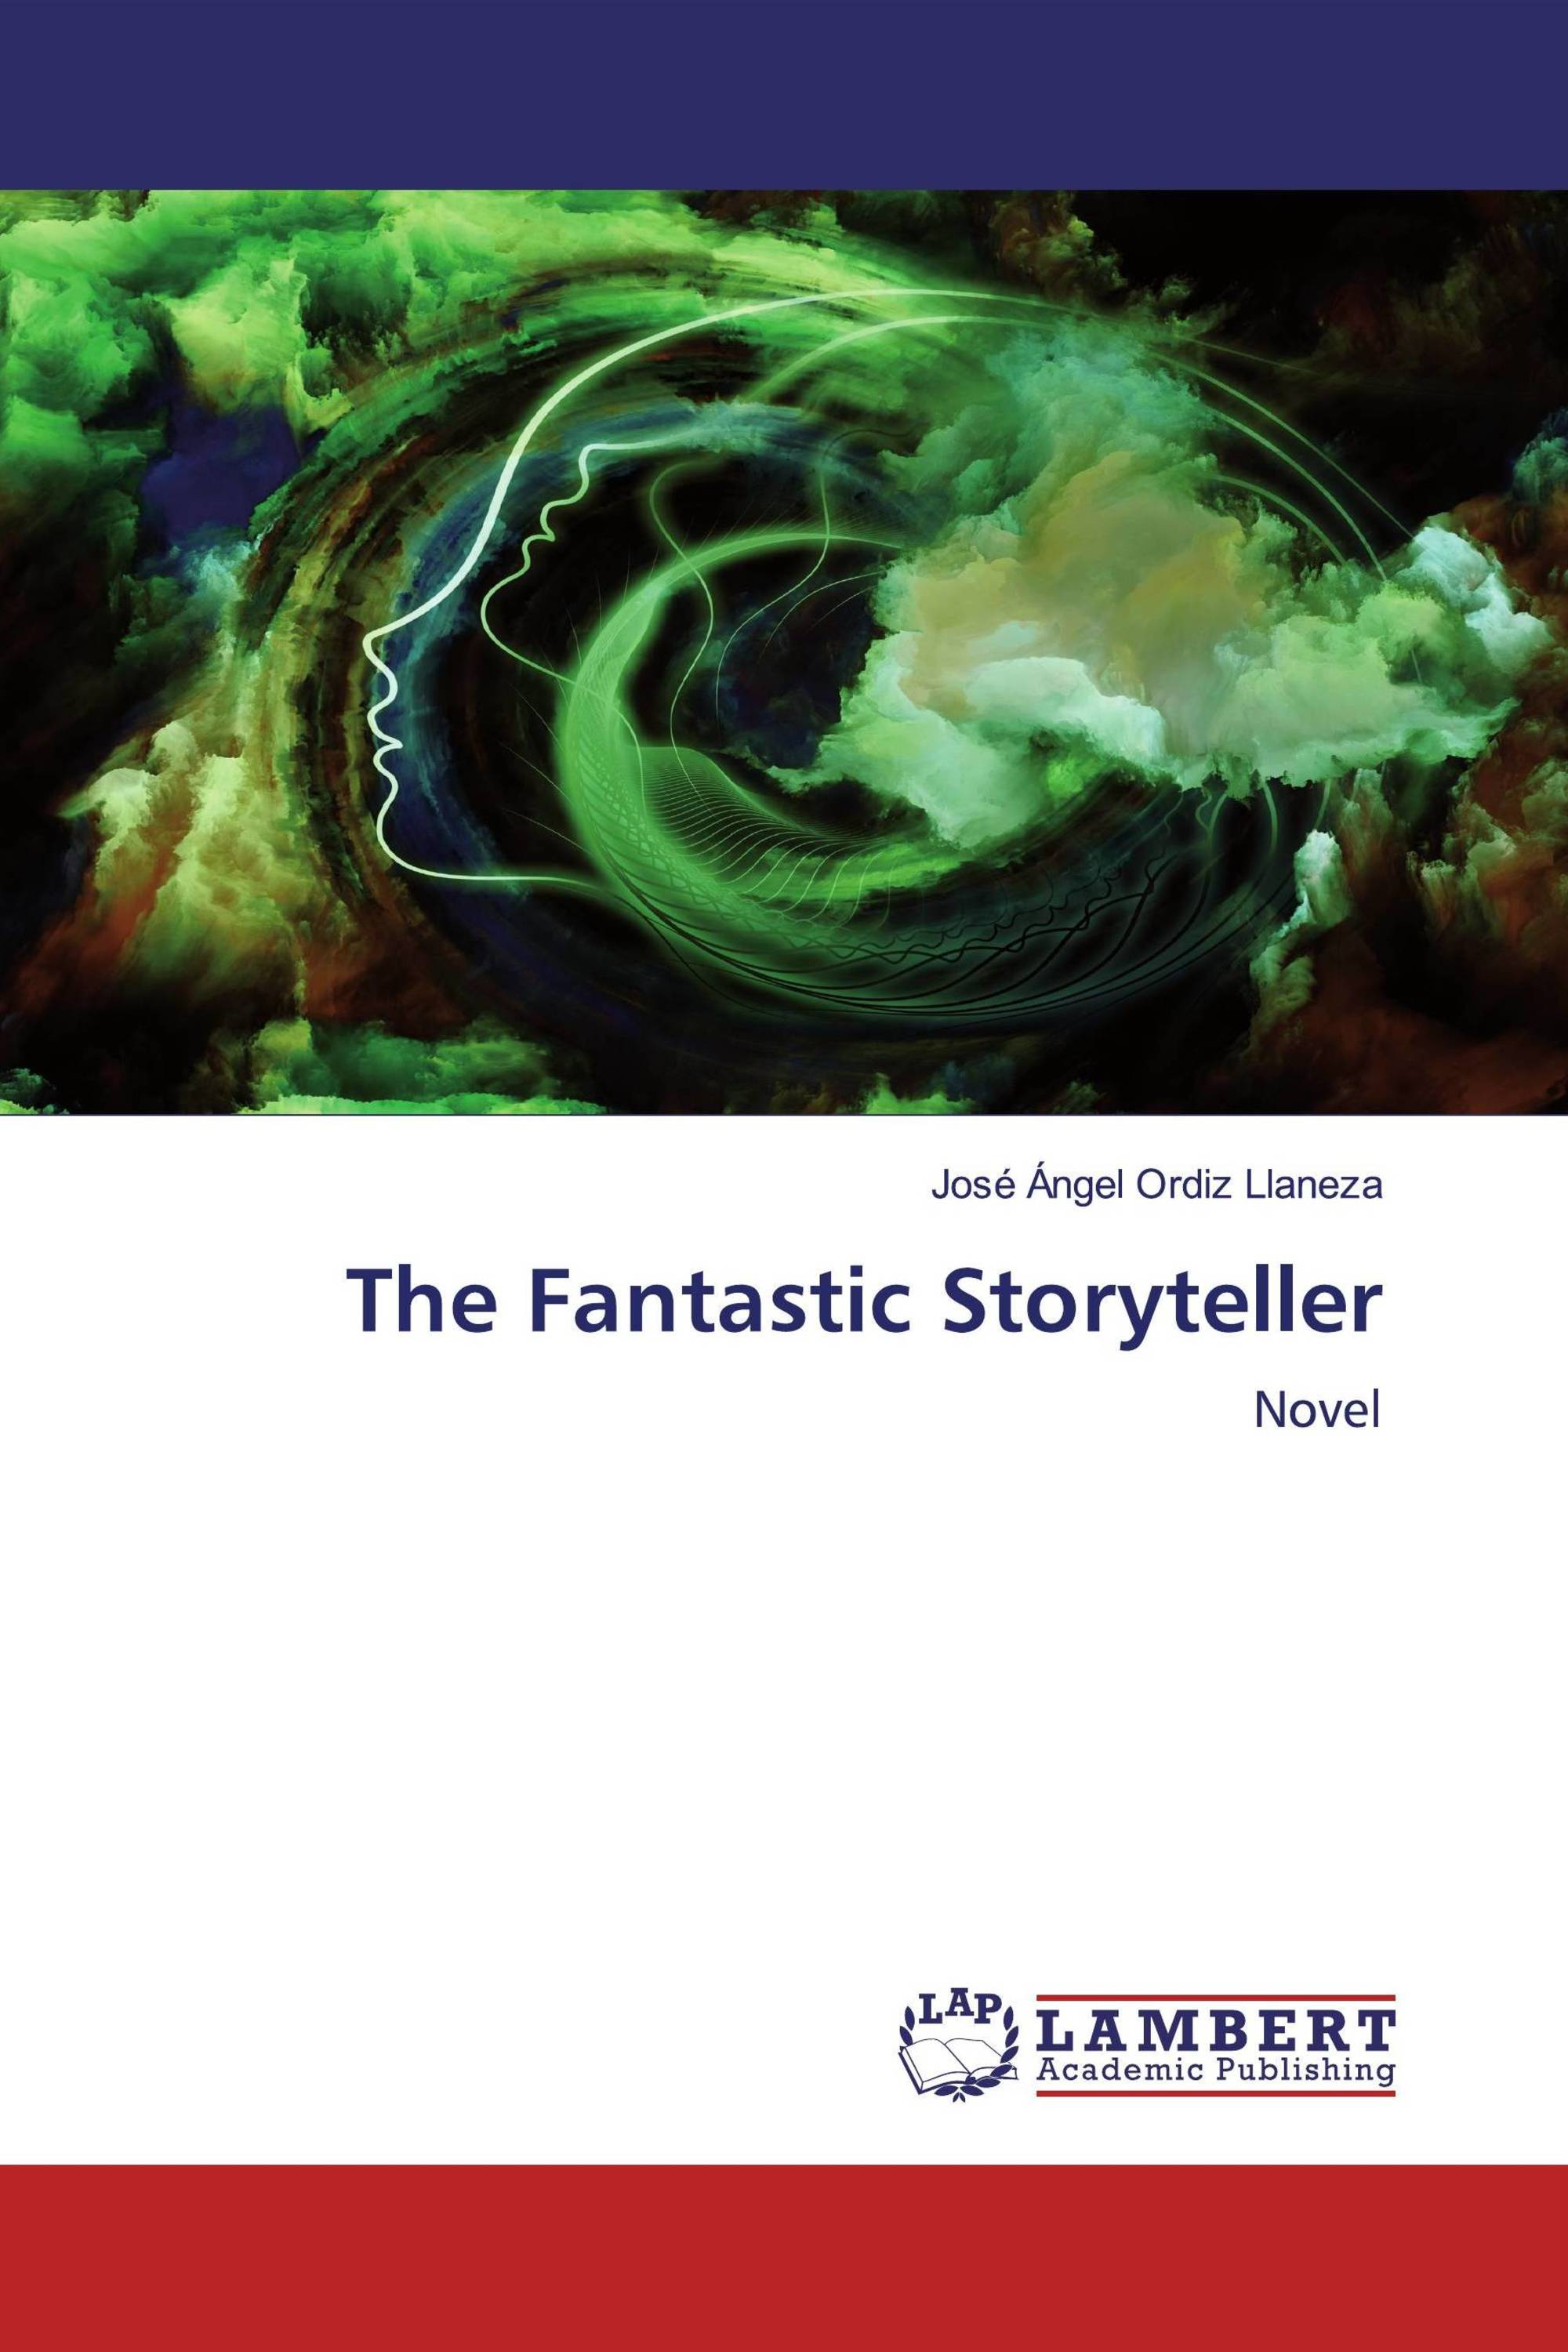 The Fantastic Storyteller